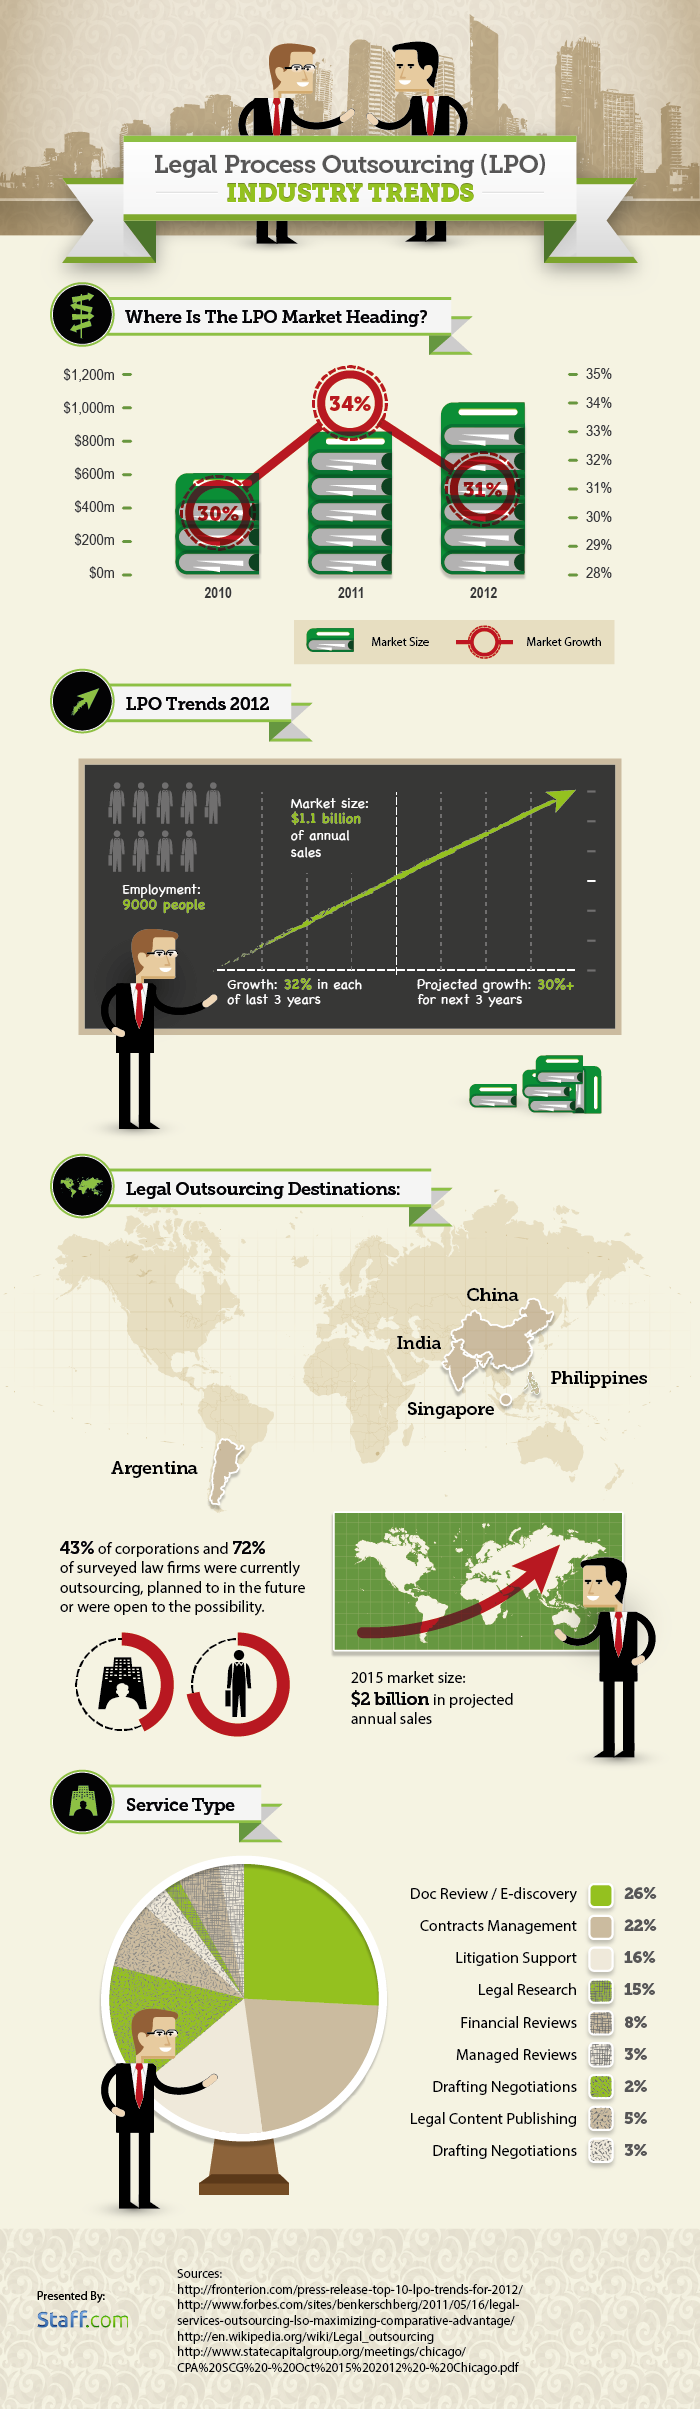 legal-process-outsourcing-trends